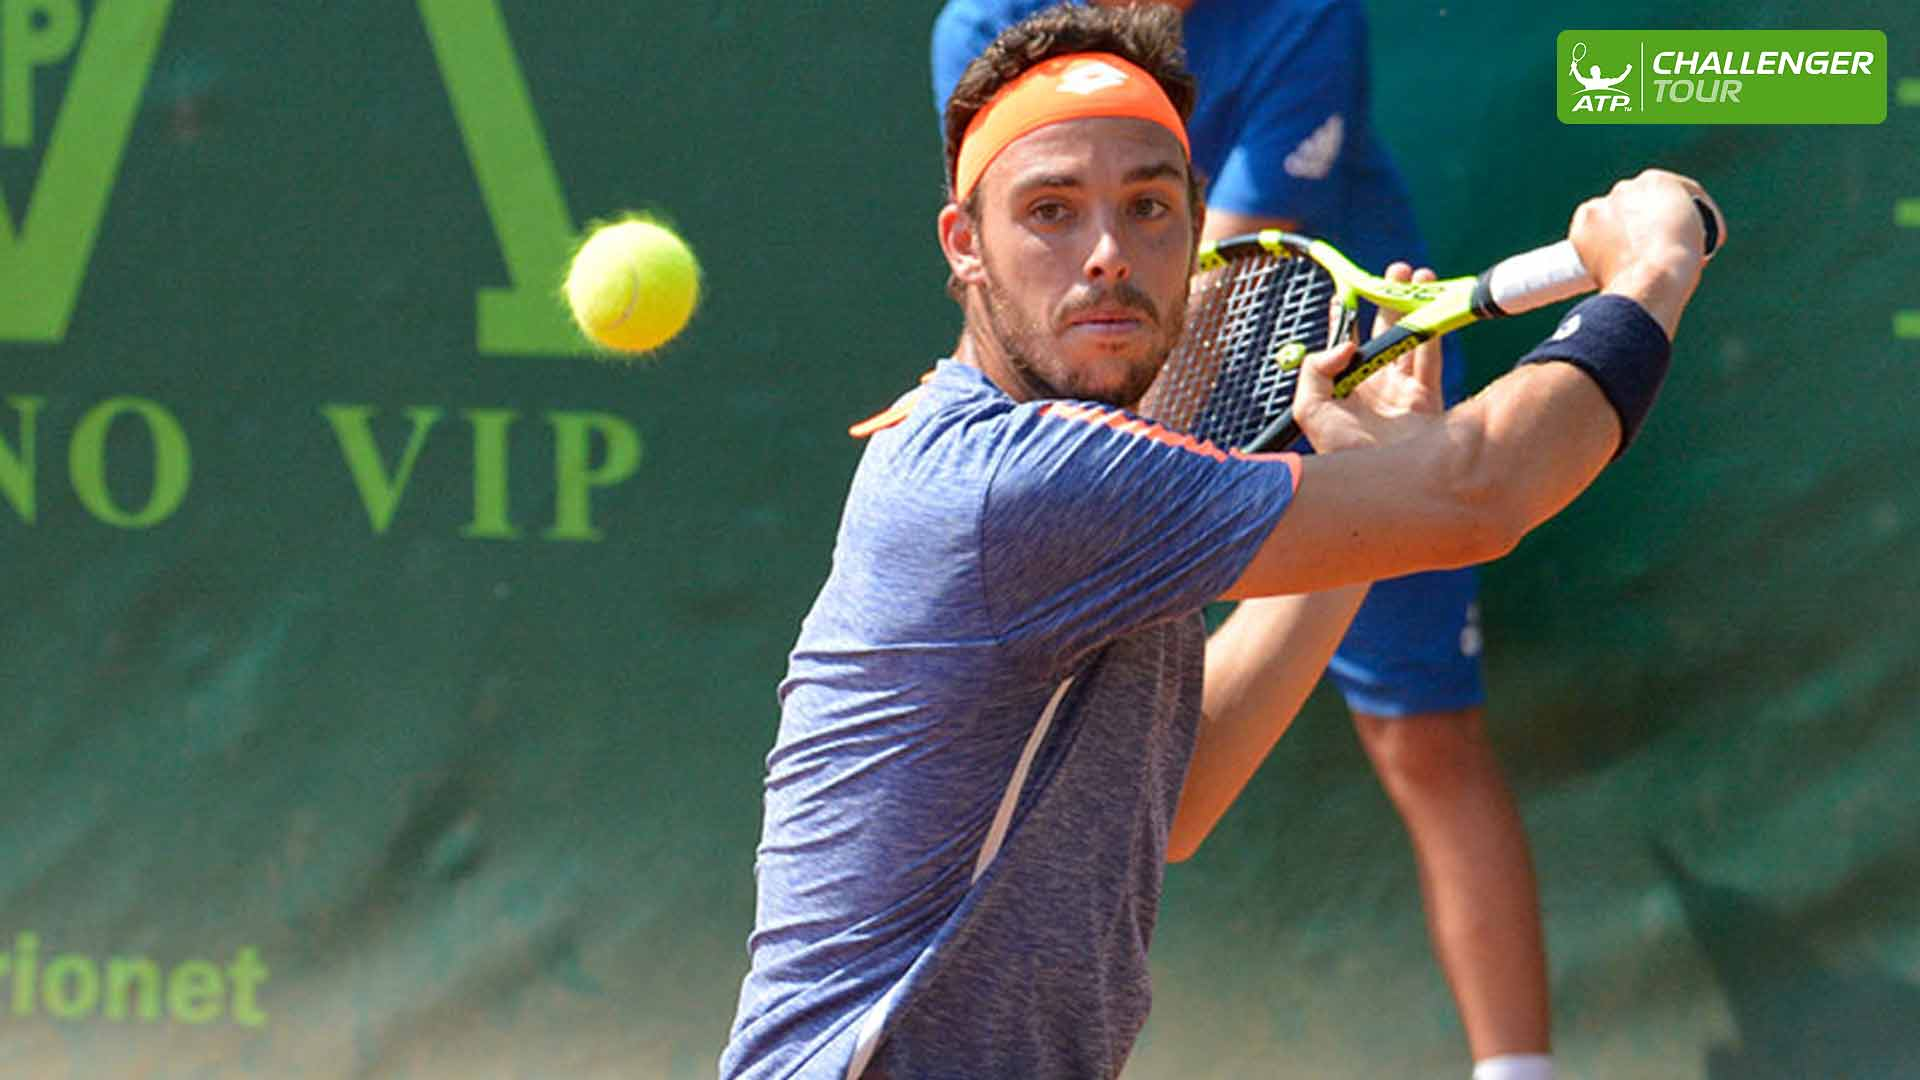 Marco Cecchinato is back on home soil this week on the ATP Challenger Tour.